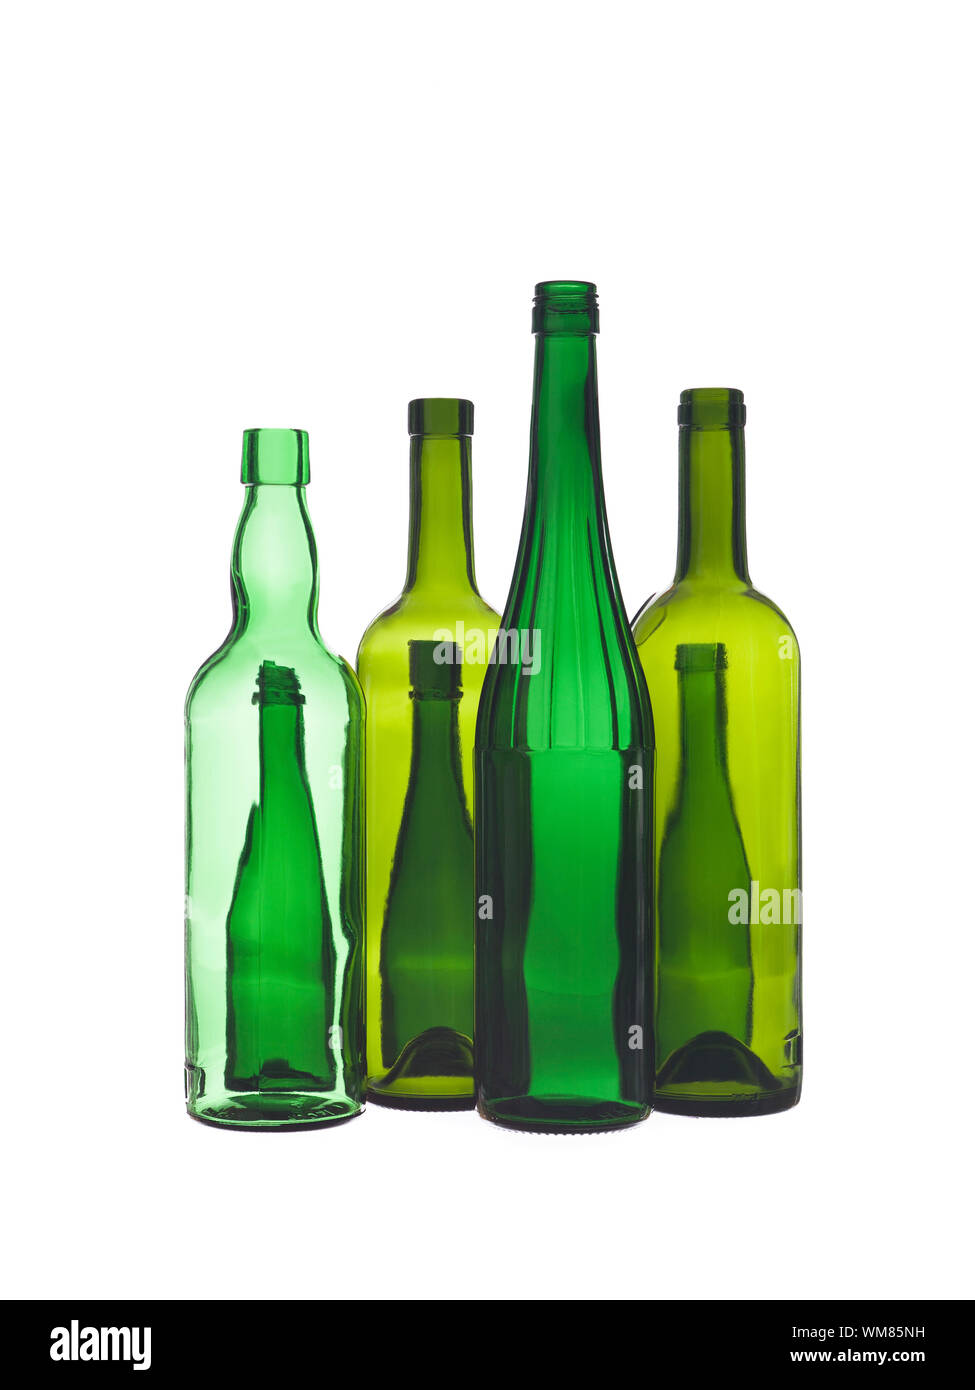 Formation of bottles Stock Photo